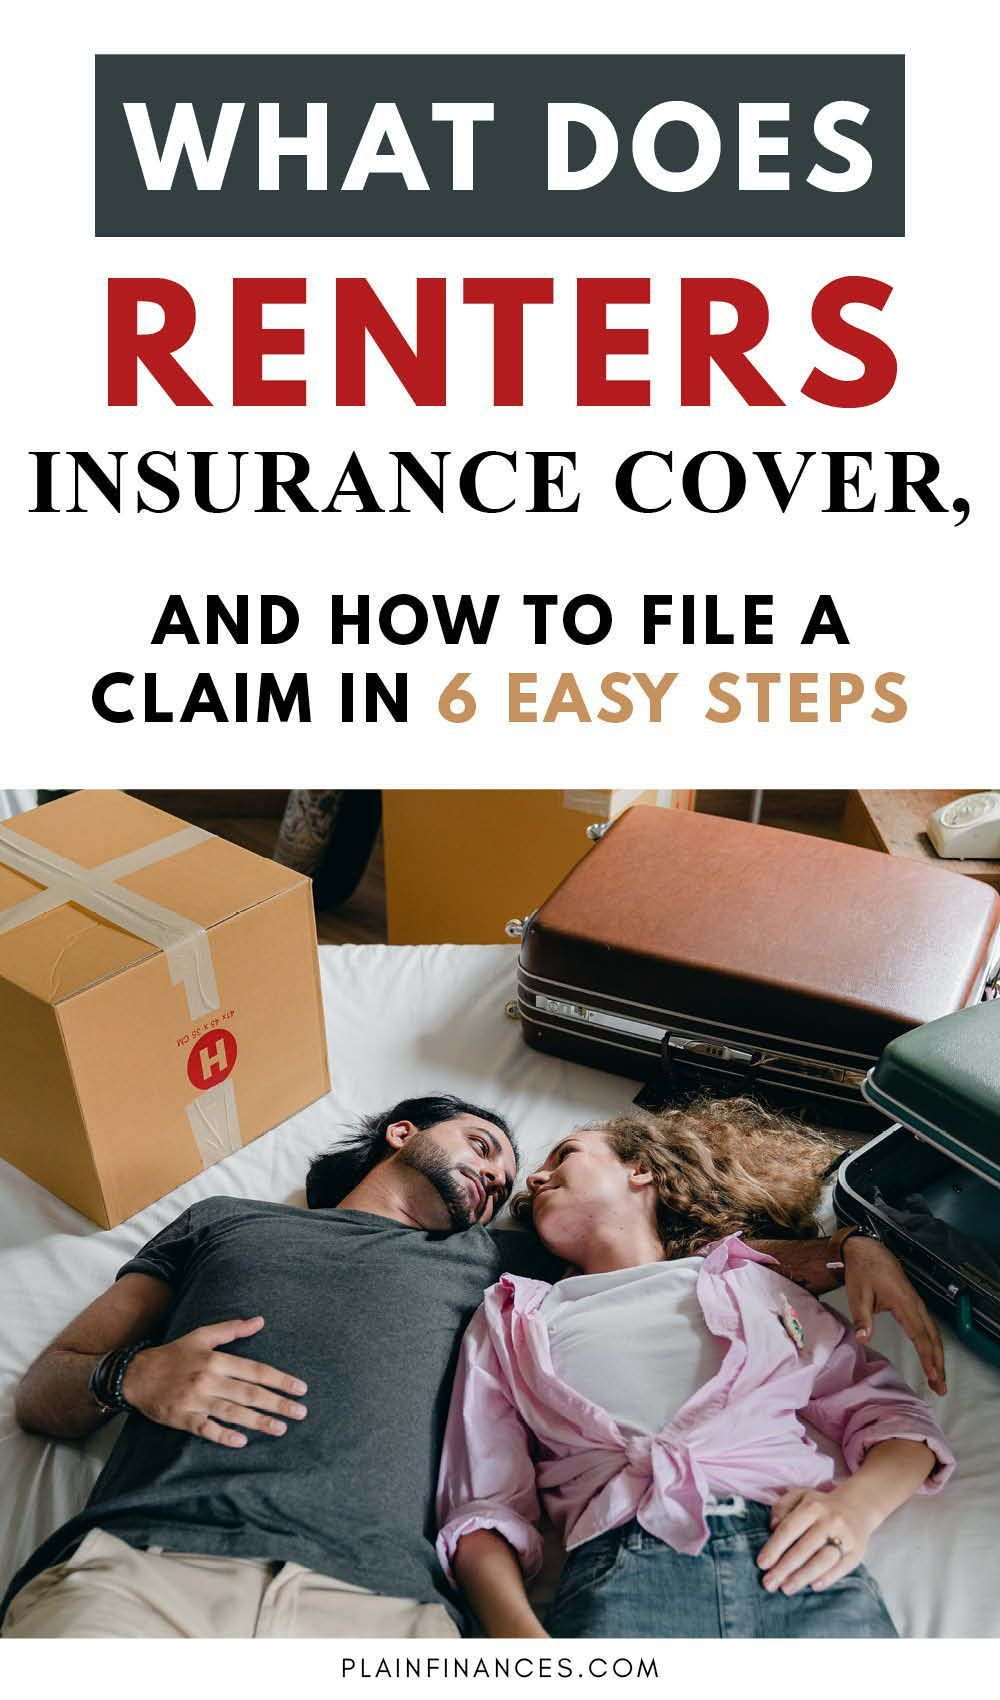 What Does Renters Insurance Cover, and How to File a Claim